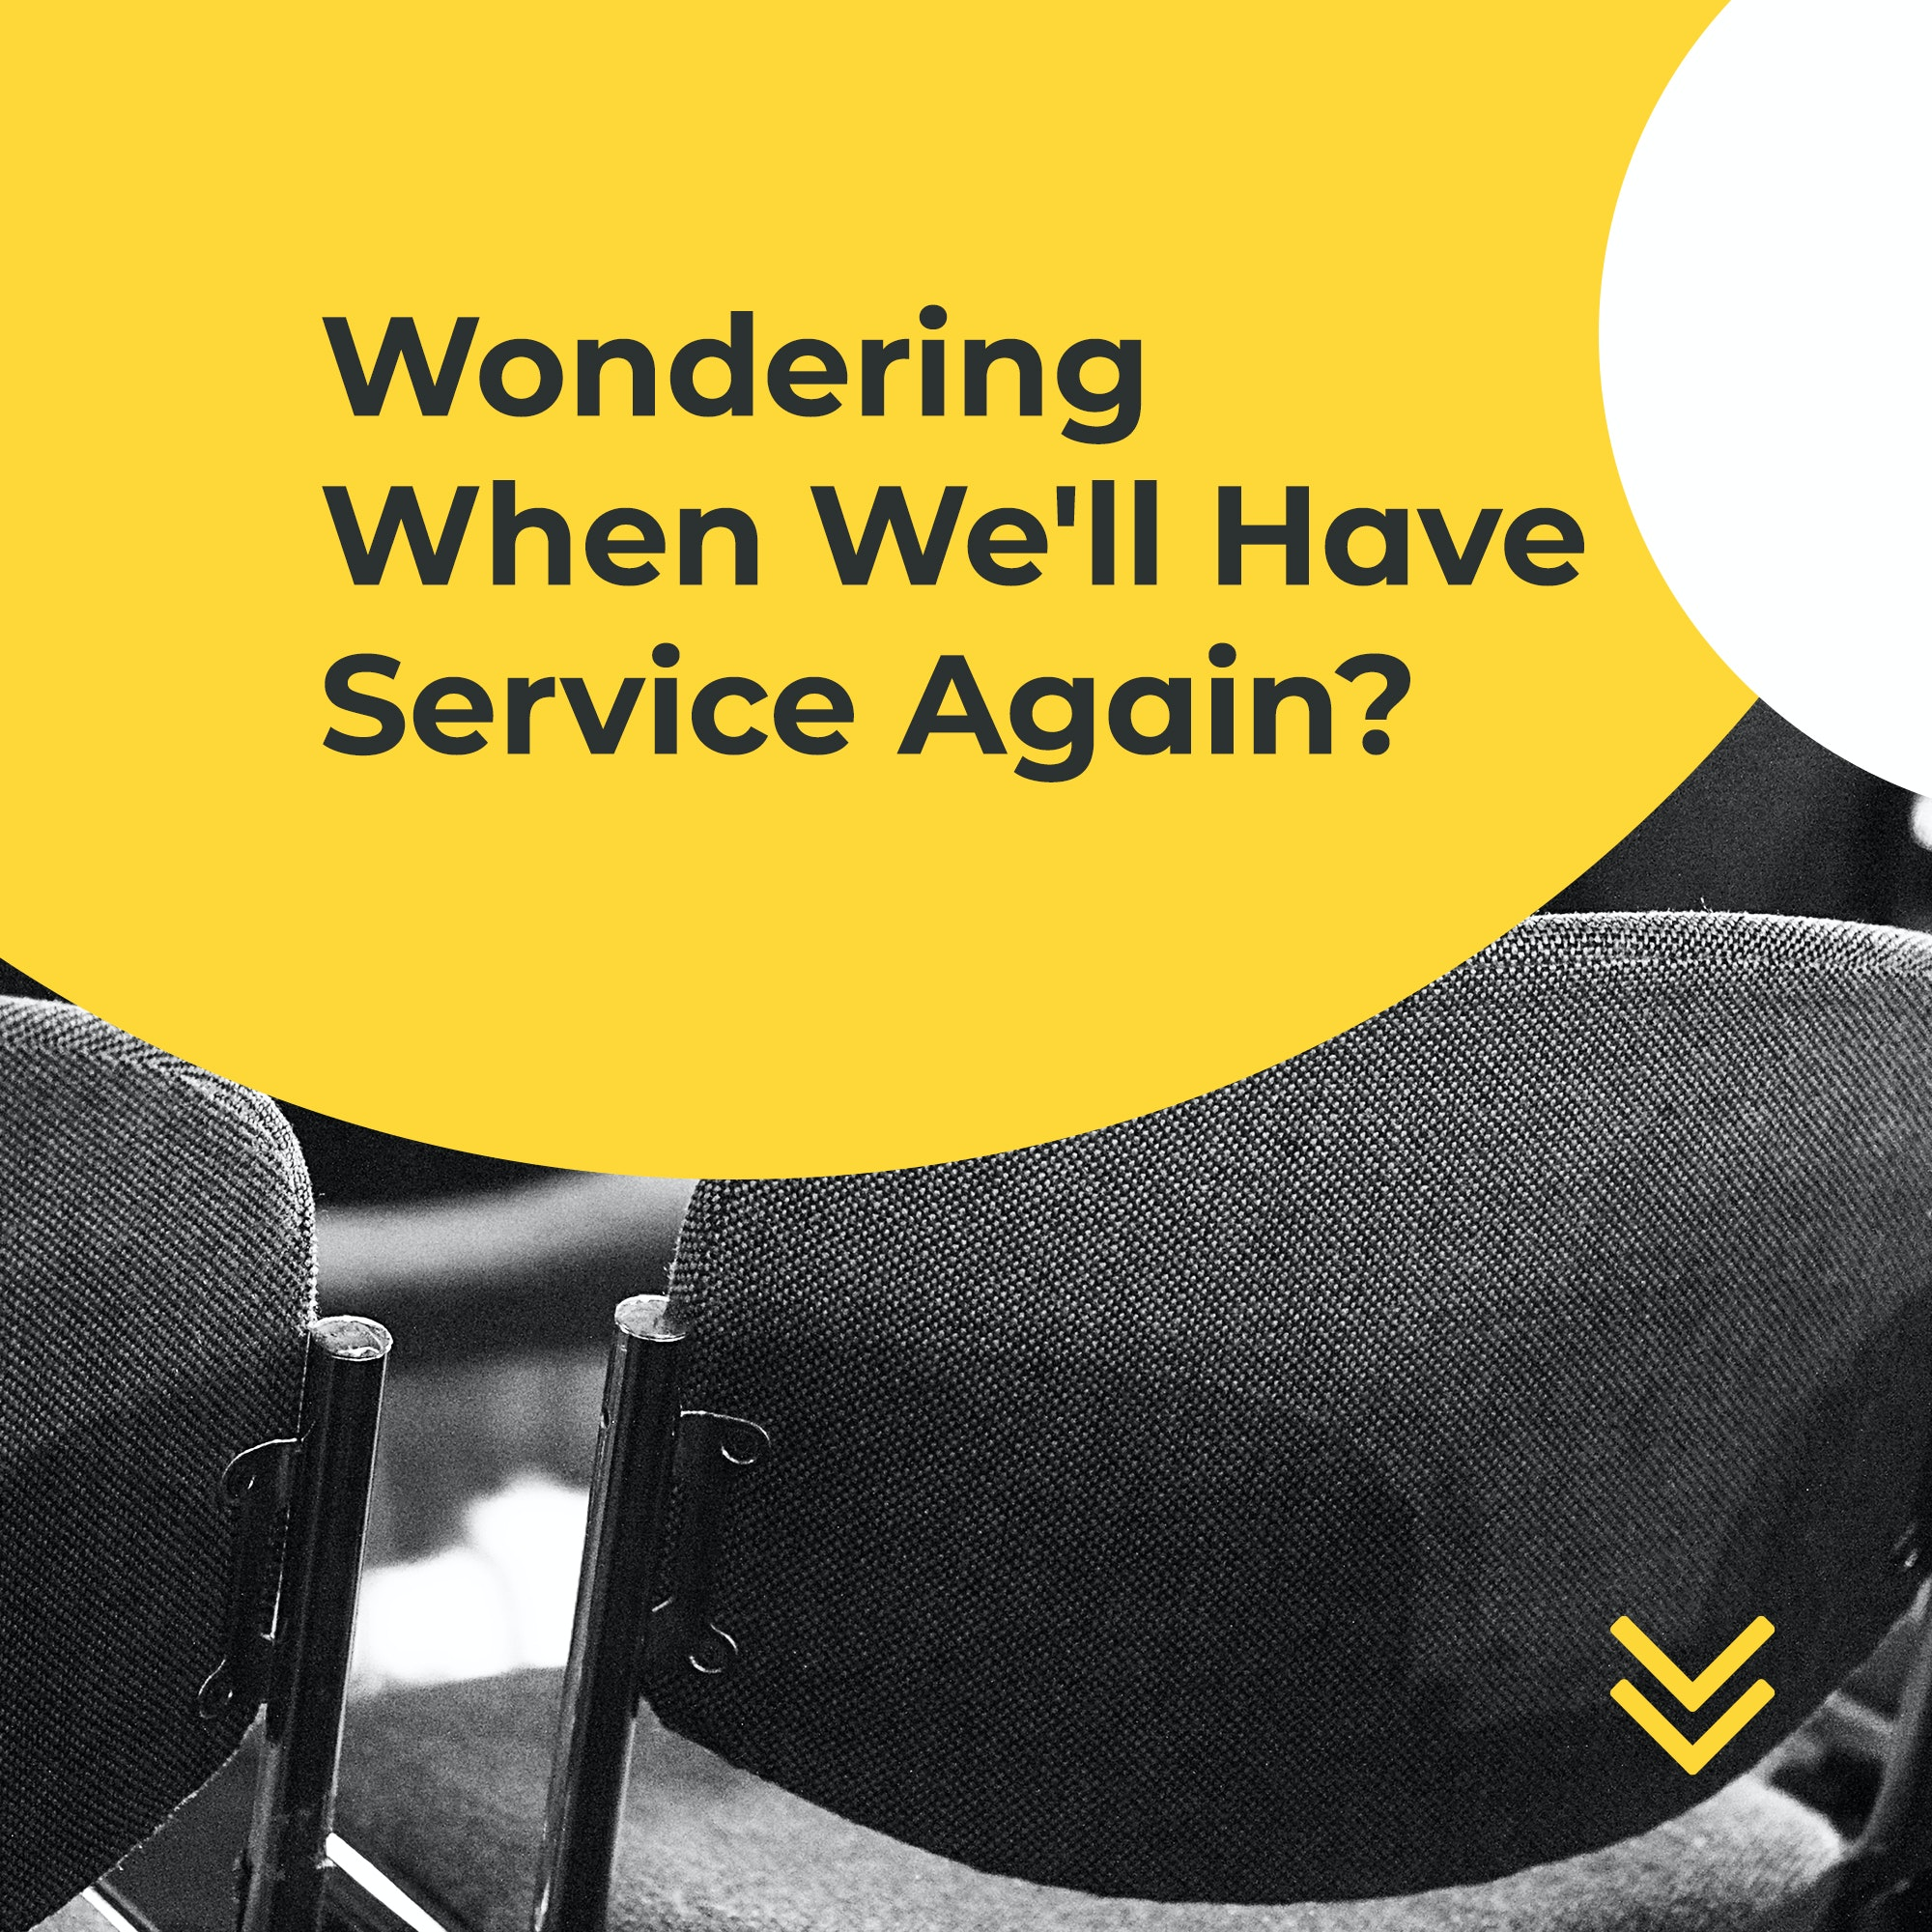 Wondering When We'll Have Service Again Modern Yellow Circles - Title